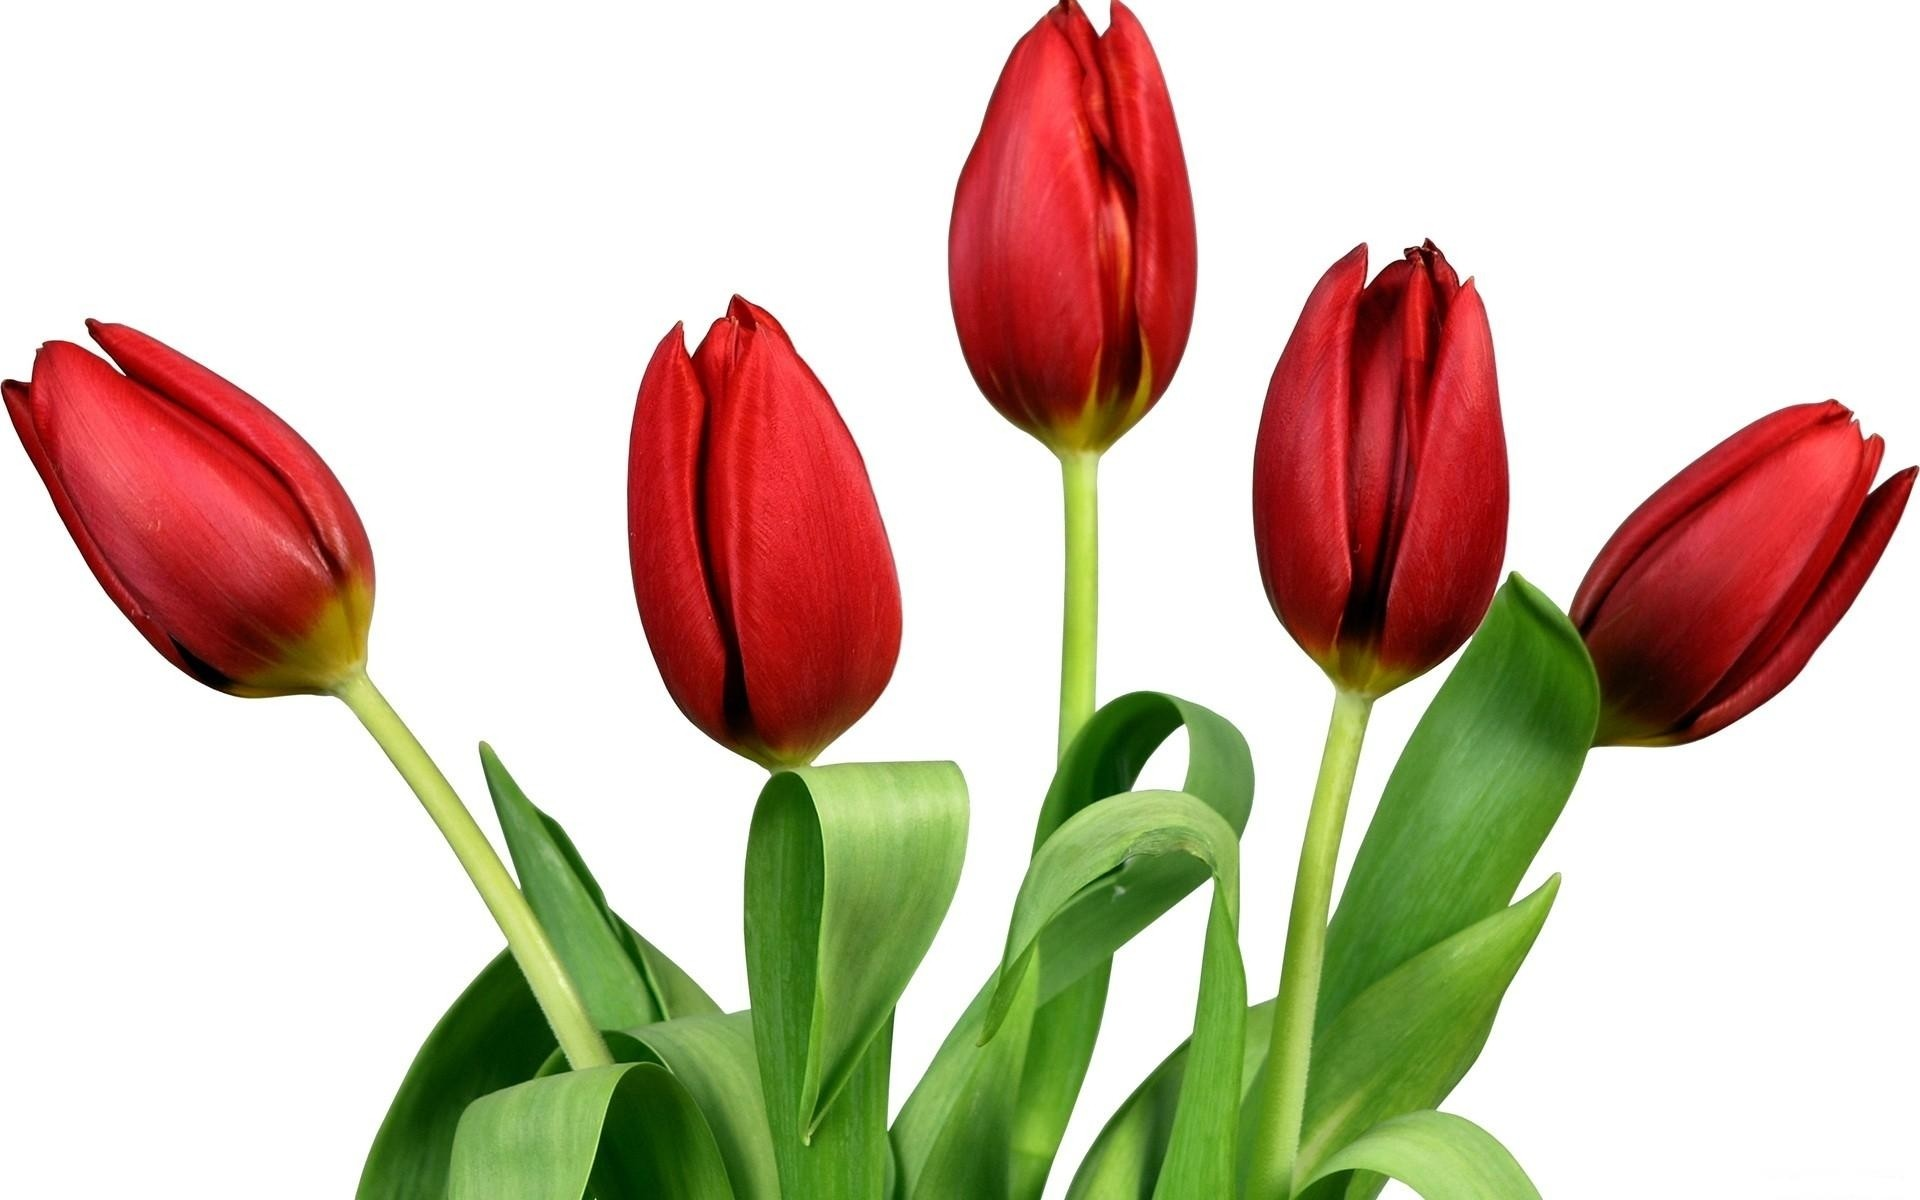 Flower: Elegant Red Tulips Spring Tulip Flowers Flower White Photos ...